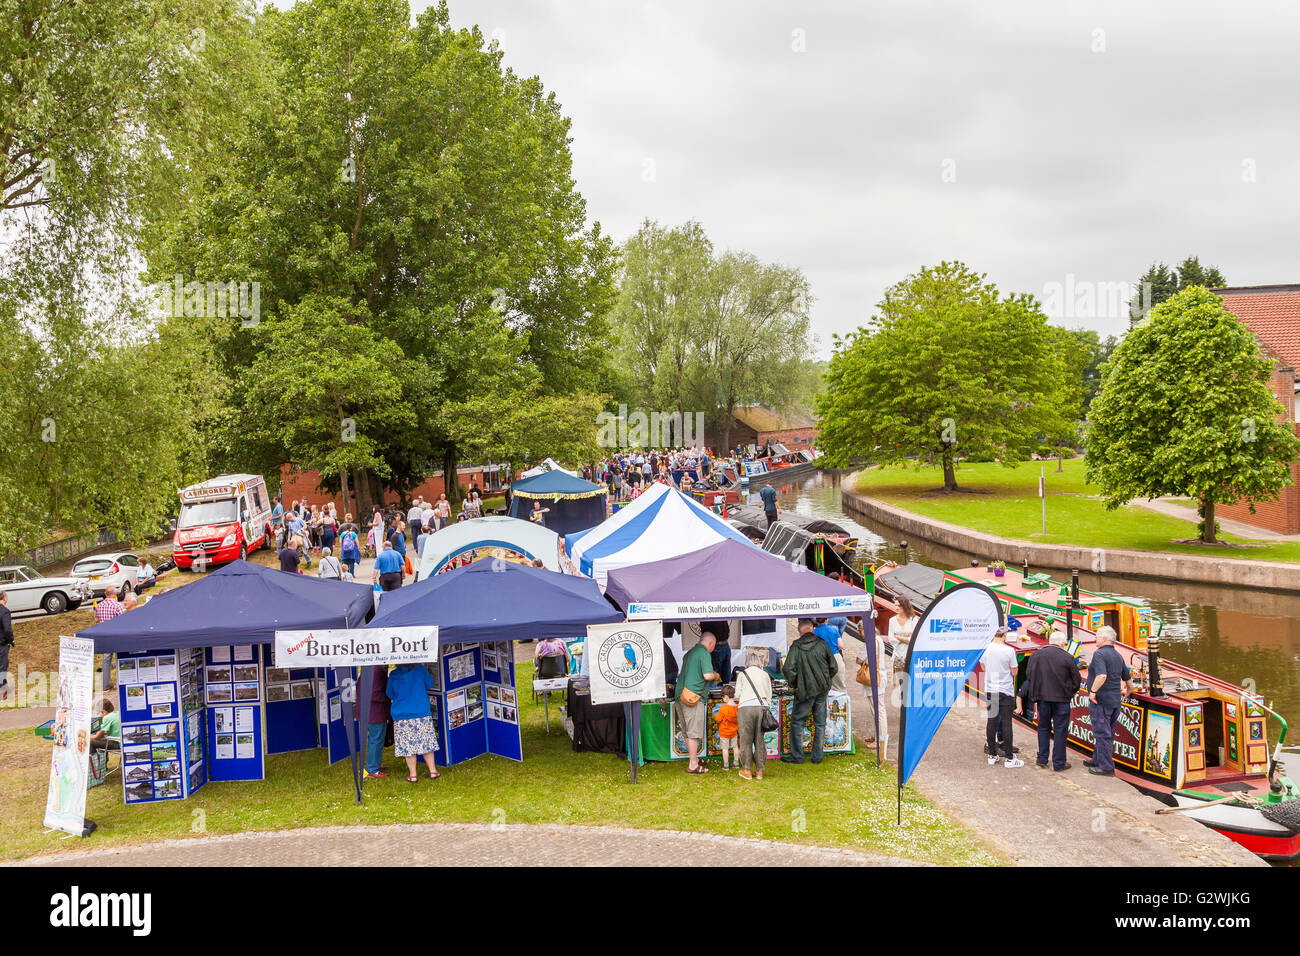 Etruria Canals Festival , Stoke On Trent, England, UK - Saturday 4th June 2016. Visitors enjoying a fun packed day - Stock Image